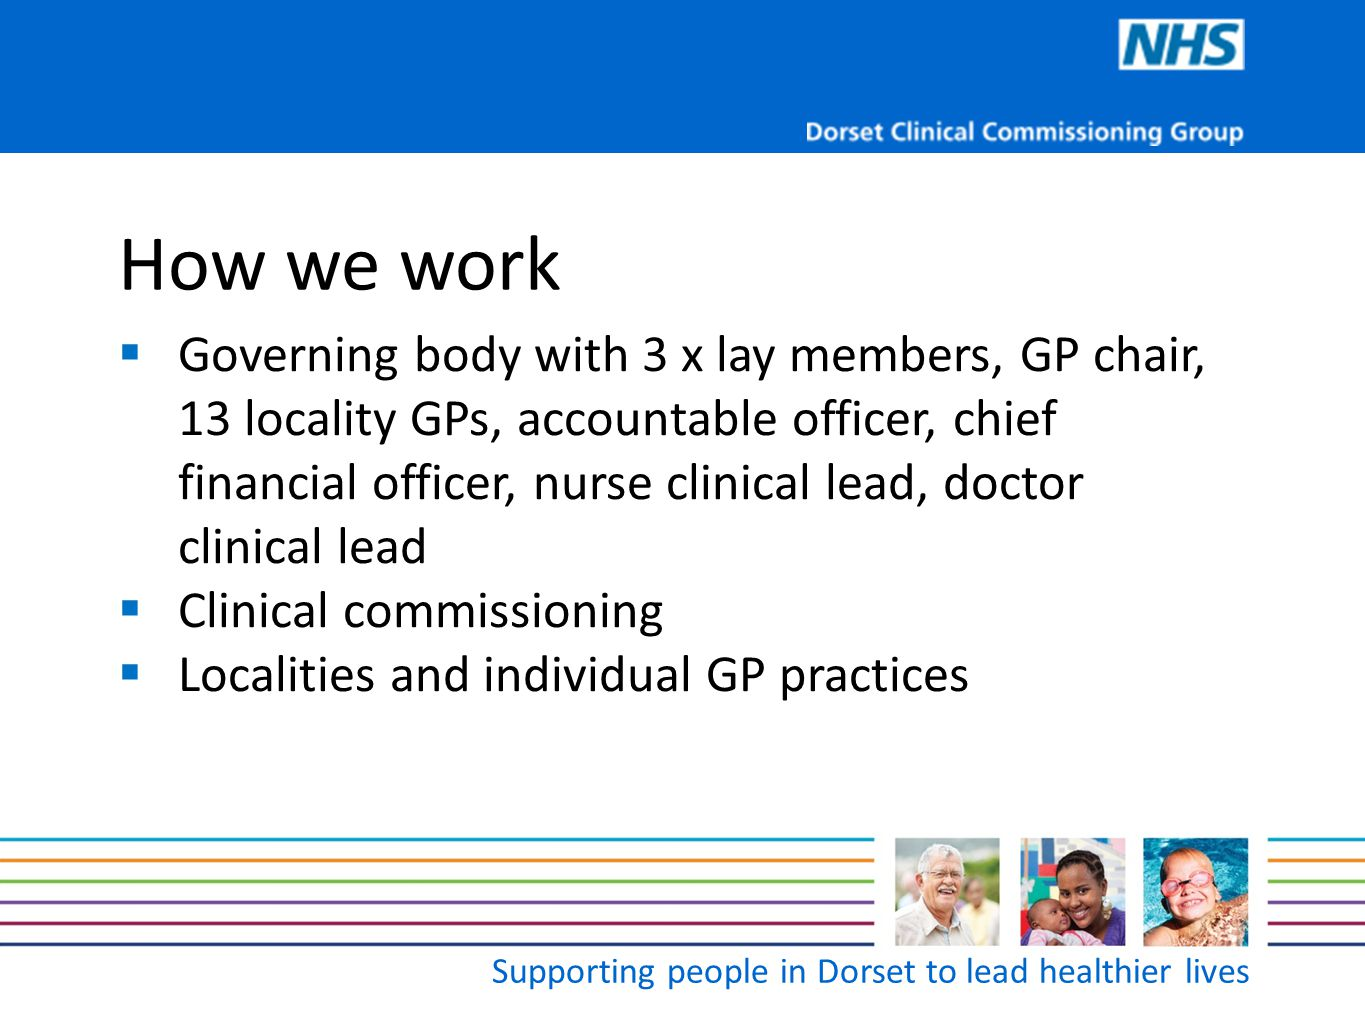 Supporting people in Dorset to lead healthier lives Progress to date  Structure and governance - constitution  Clinical commissioning programmes  Cancer and end of life  General medical  Maternity, family and sexual health  CVD, stroke and diabetes  Musculo skeletal and trauma  Mental health and learning disabilities